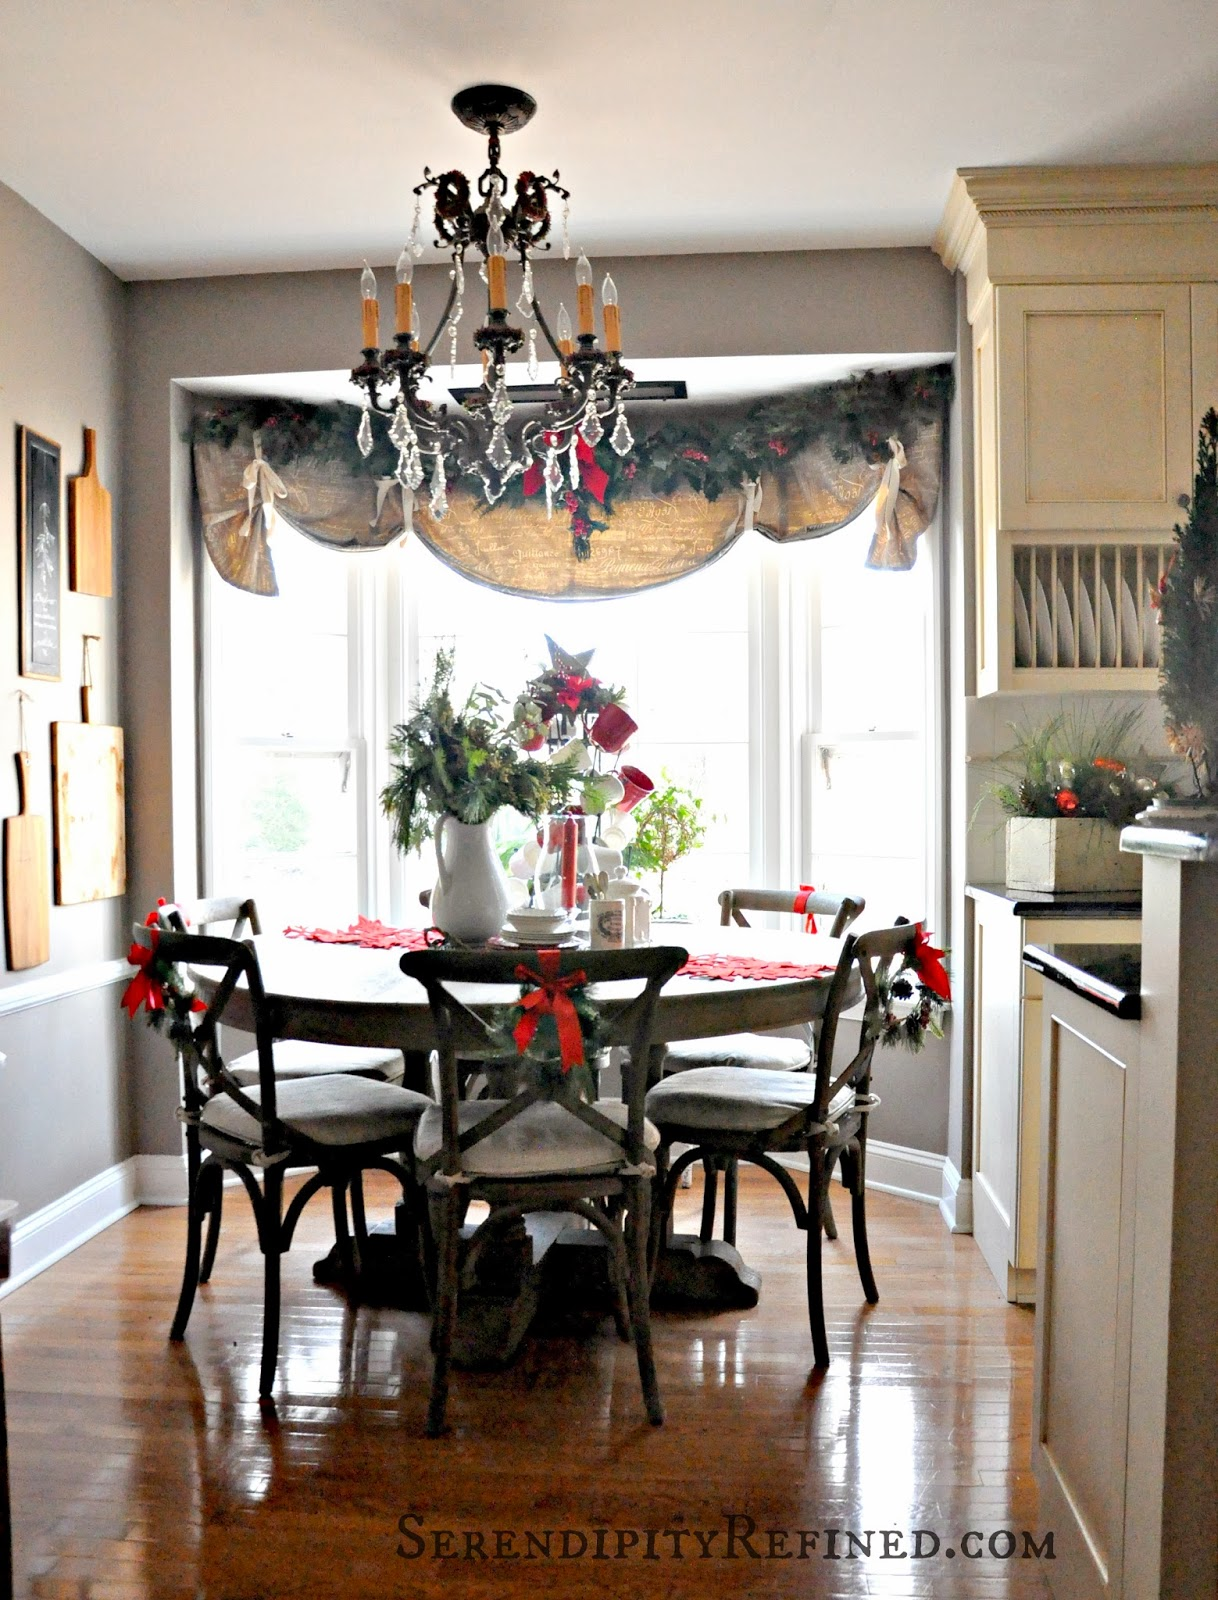 Ideal Serendipity Refined Blog Holiday Home Tour Day French Farmhouse Kitchen